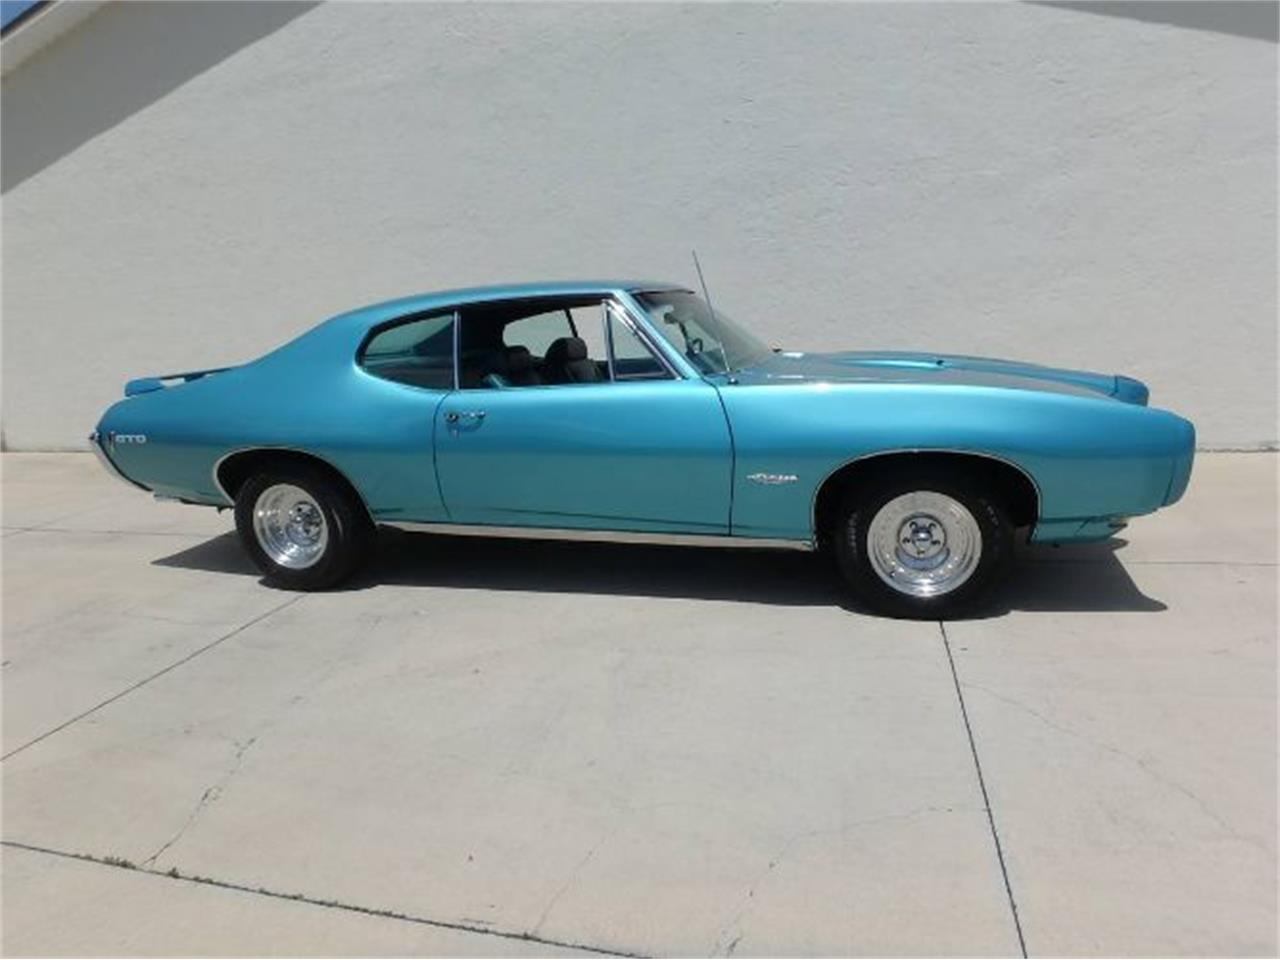 Large Picture of 1968 Pontiac GTO located in Cadillac Michigan - $28,895.00 - QZRL